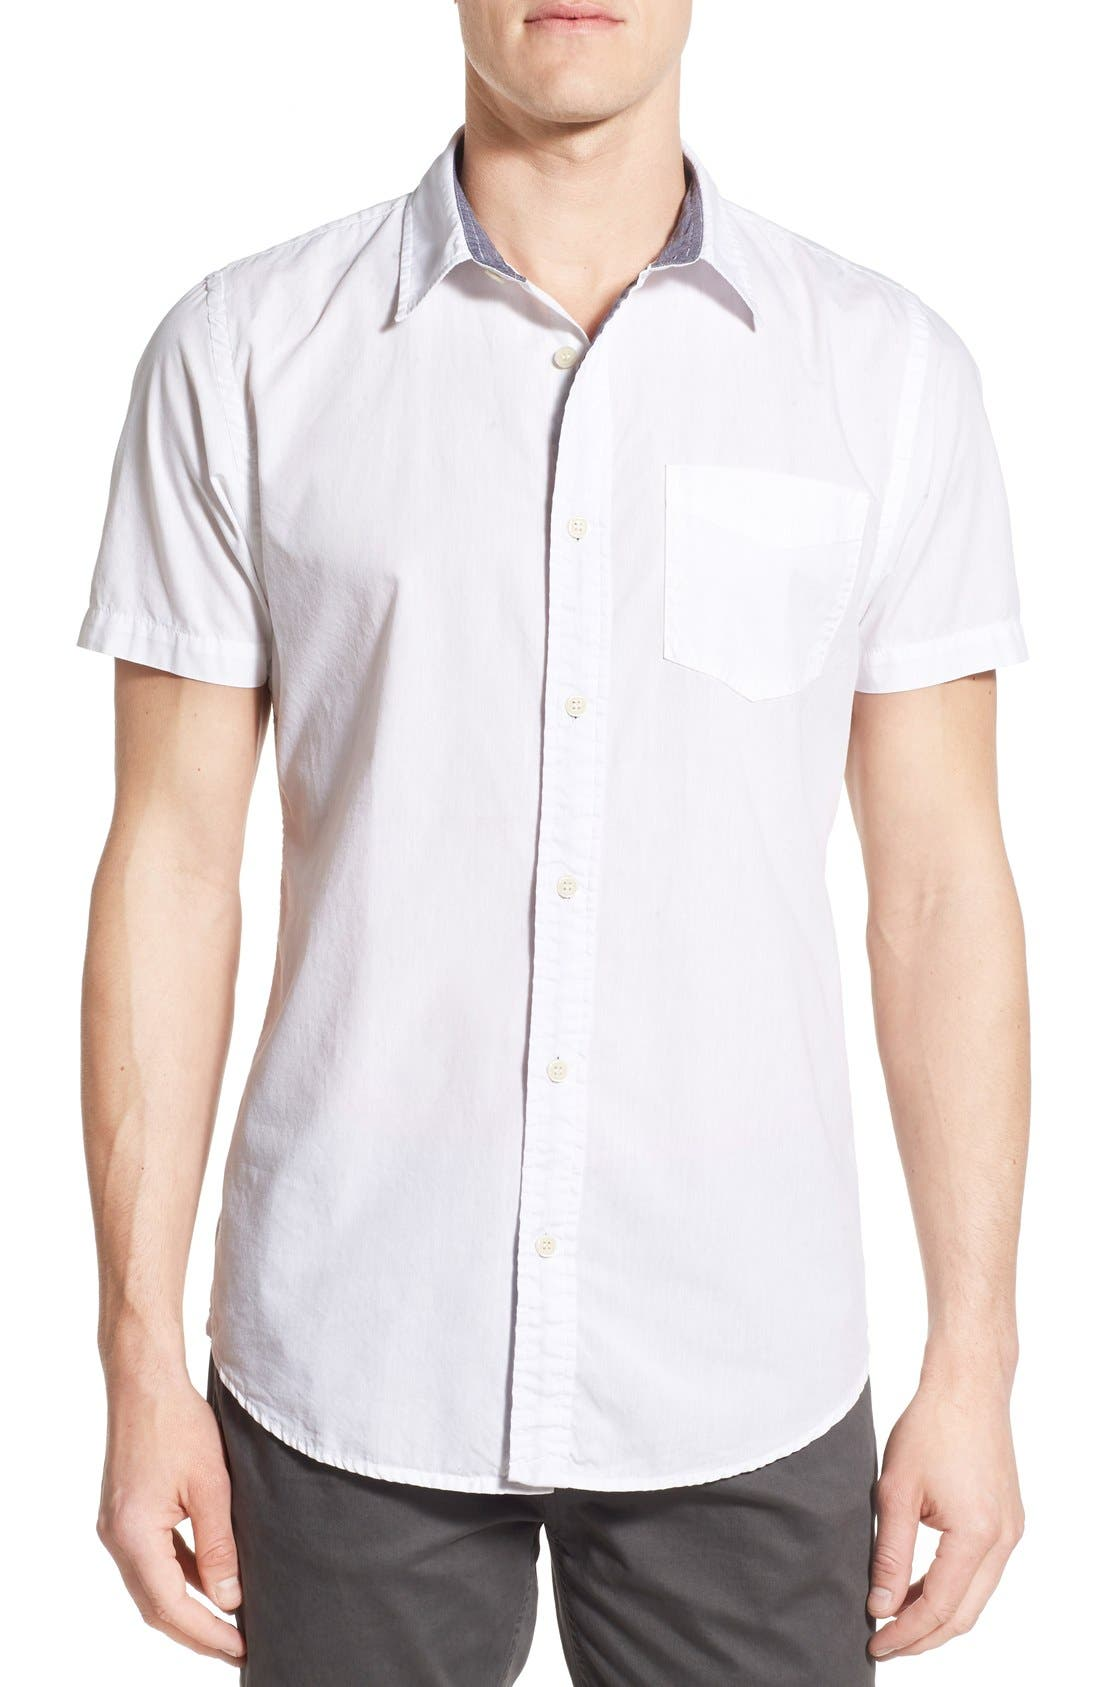 ORIGINAL PAPERBACKS 'Torino' Short Sleeve Woven Shirt